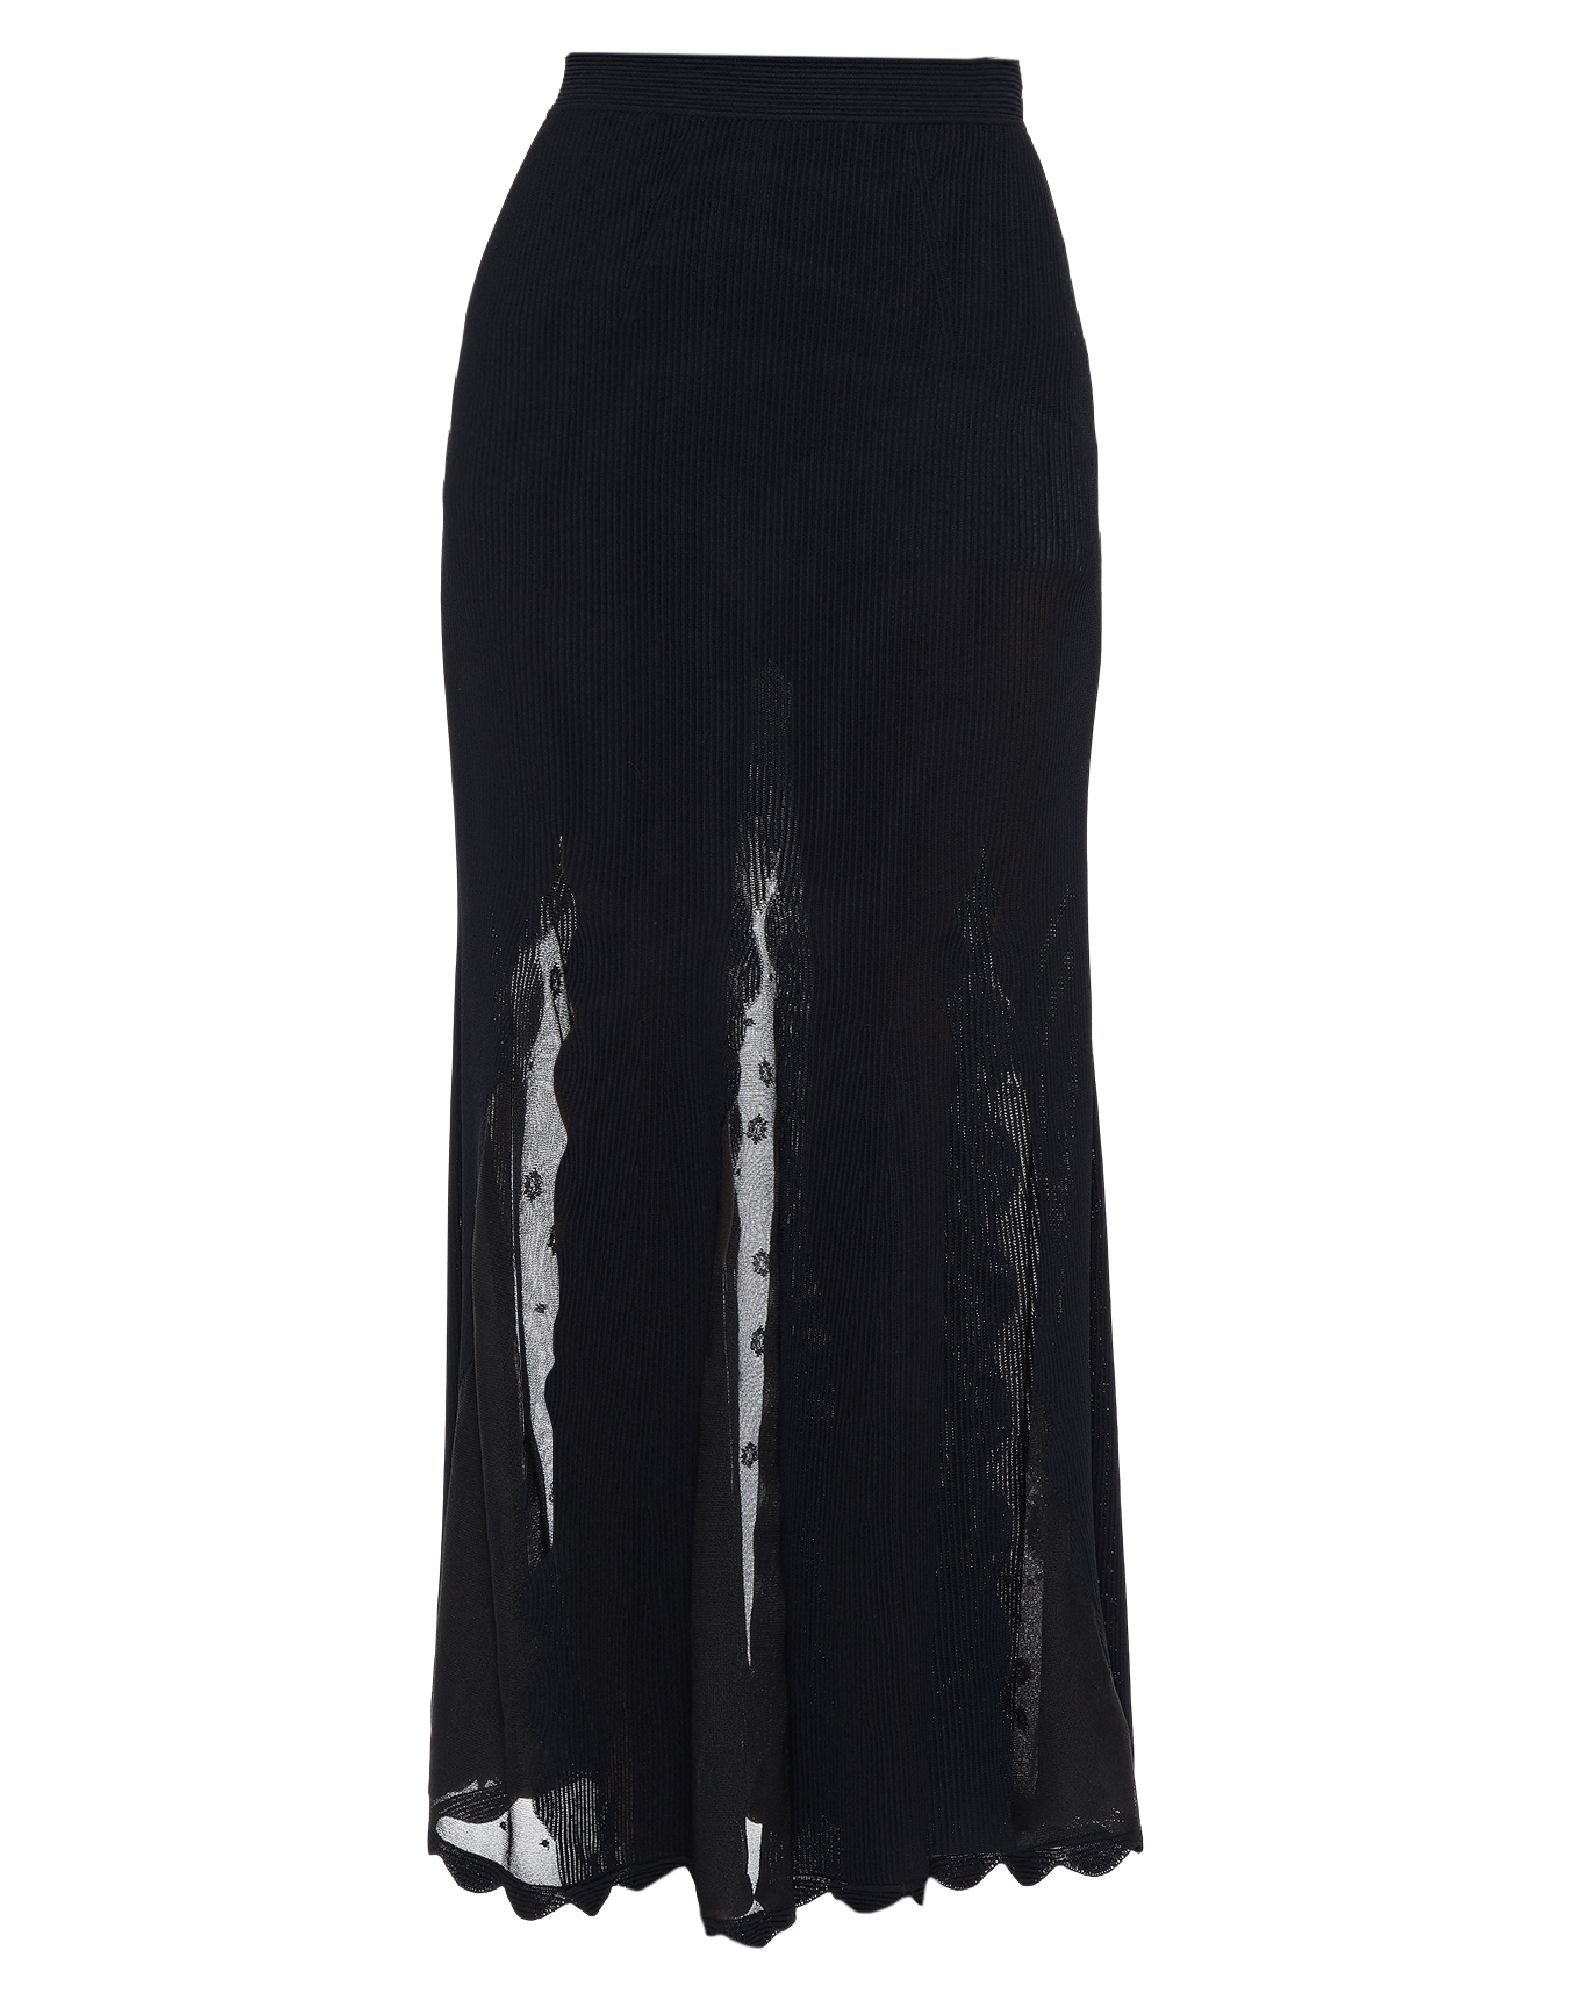 ALEXANDER MCQUEEN Long skirts. knitted, no appliqués, basic solid color, semi-lined, side closure, no pockets. 87% Viscose, 8% Silk, 5% Polyester